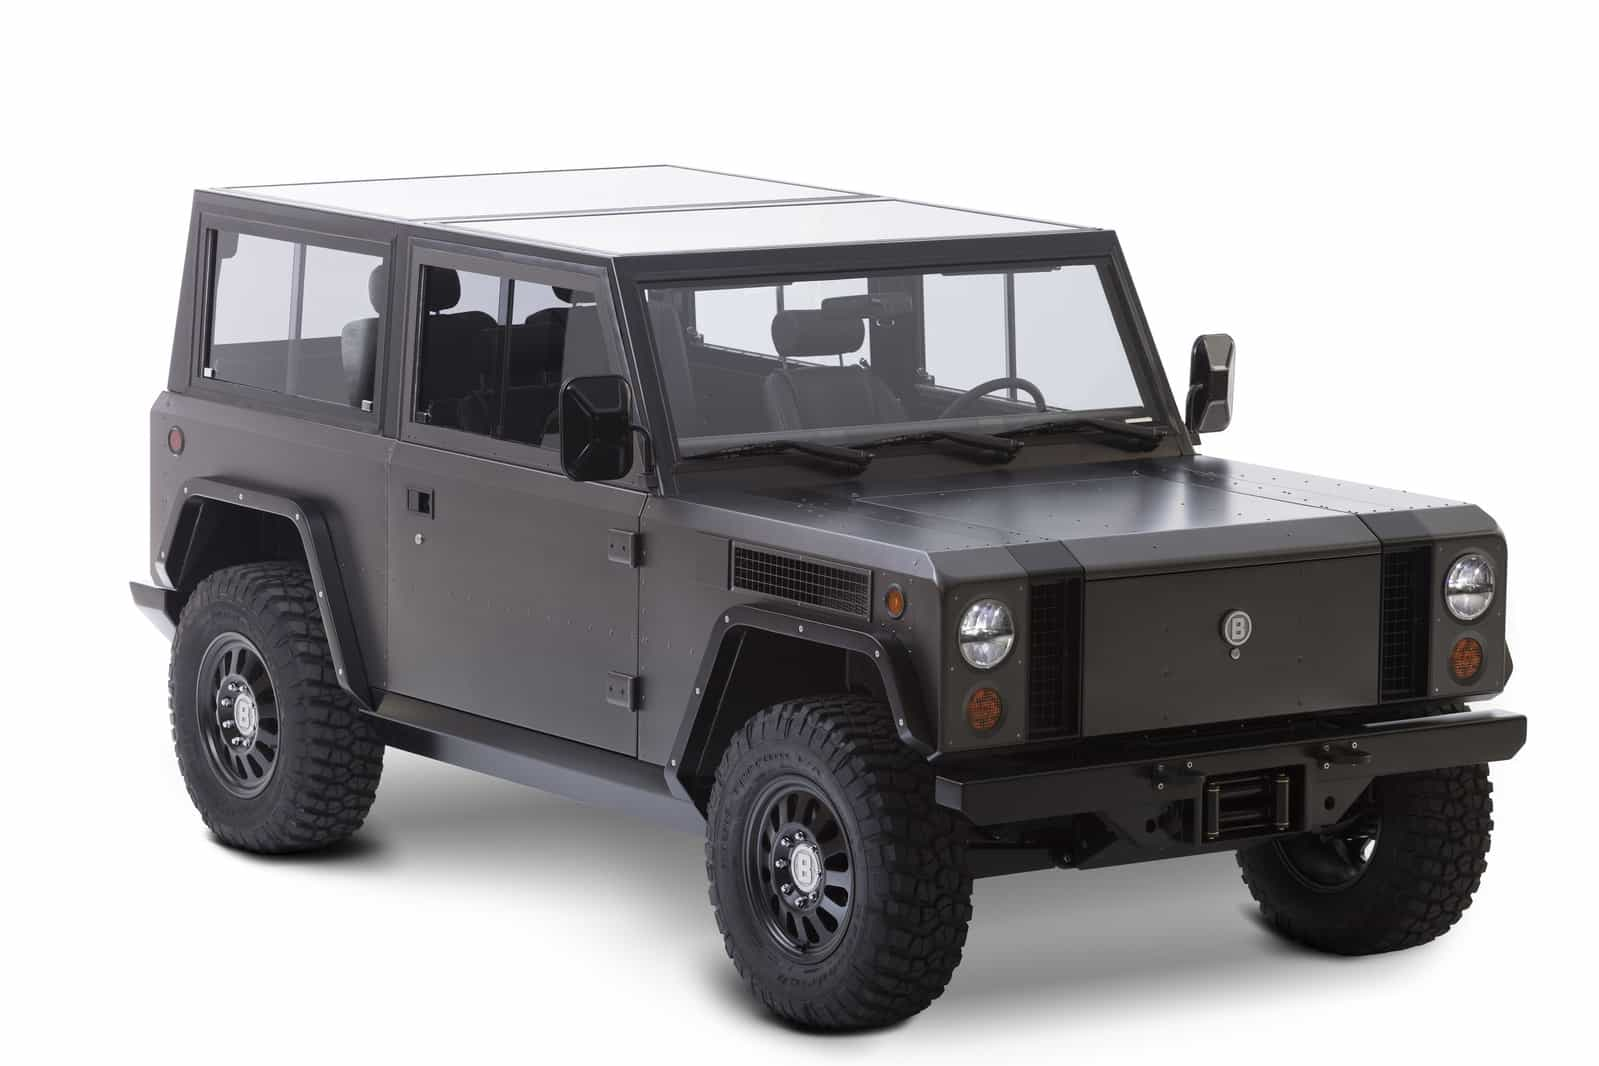 First New Electric Sport Utility Truck B1 Bollinger Motors Jeep Land Rover Modernized Auto Connected Car News